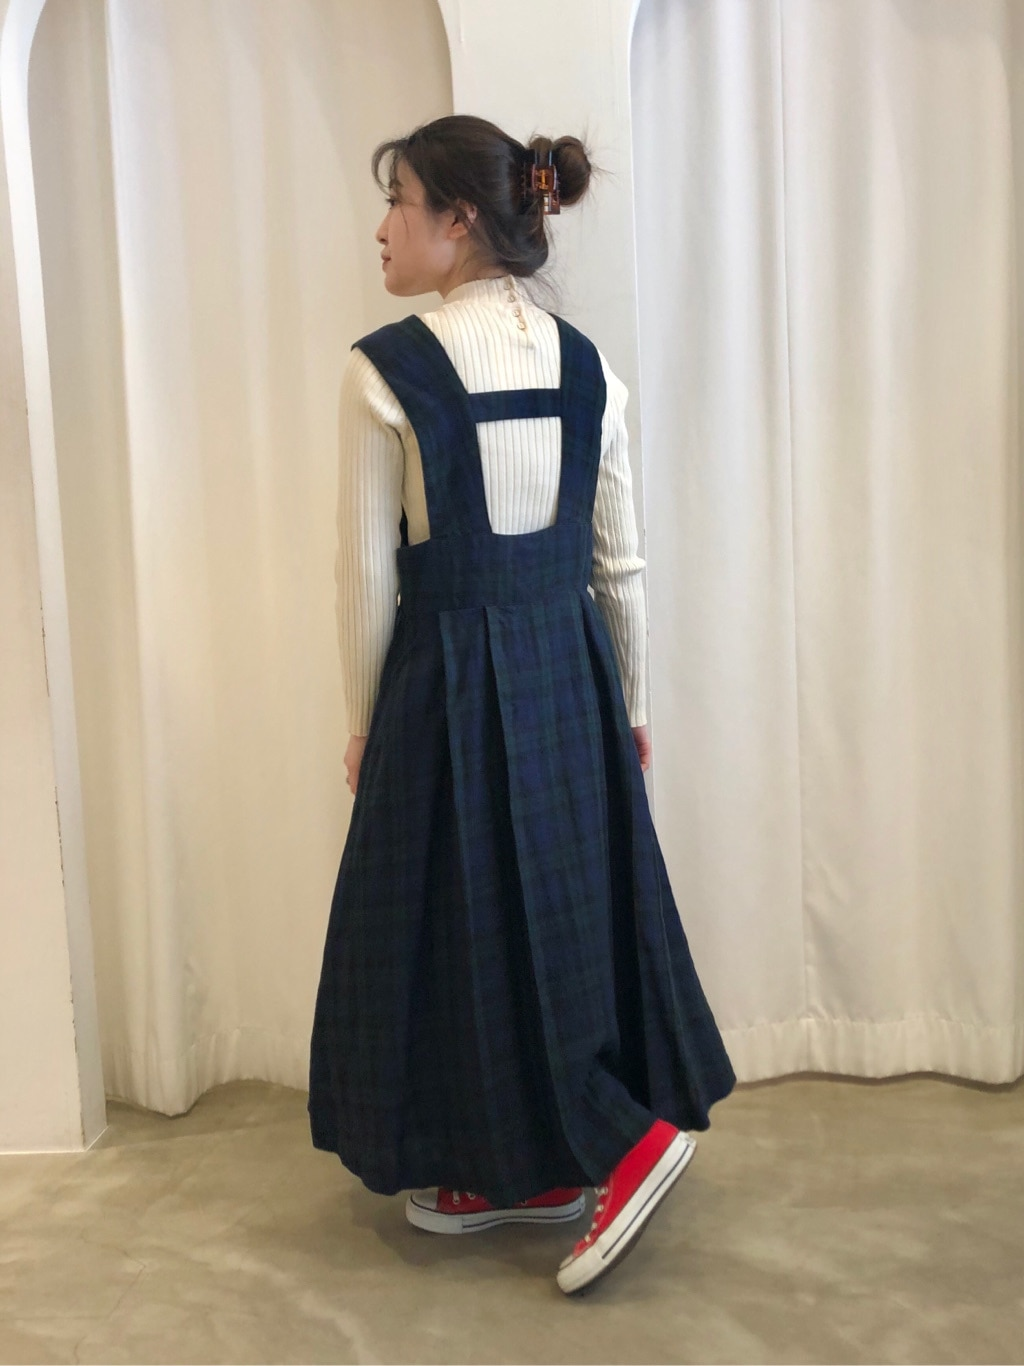 Dot and Stripes CHILD WOMAN ラフォーレ原宿 身長:153cm 2021.03.15